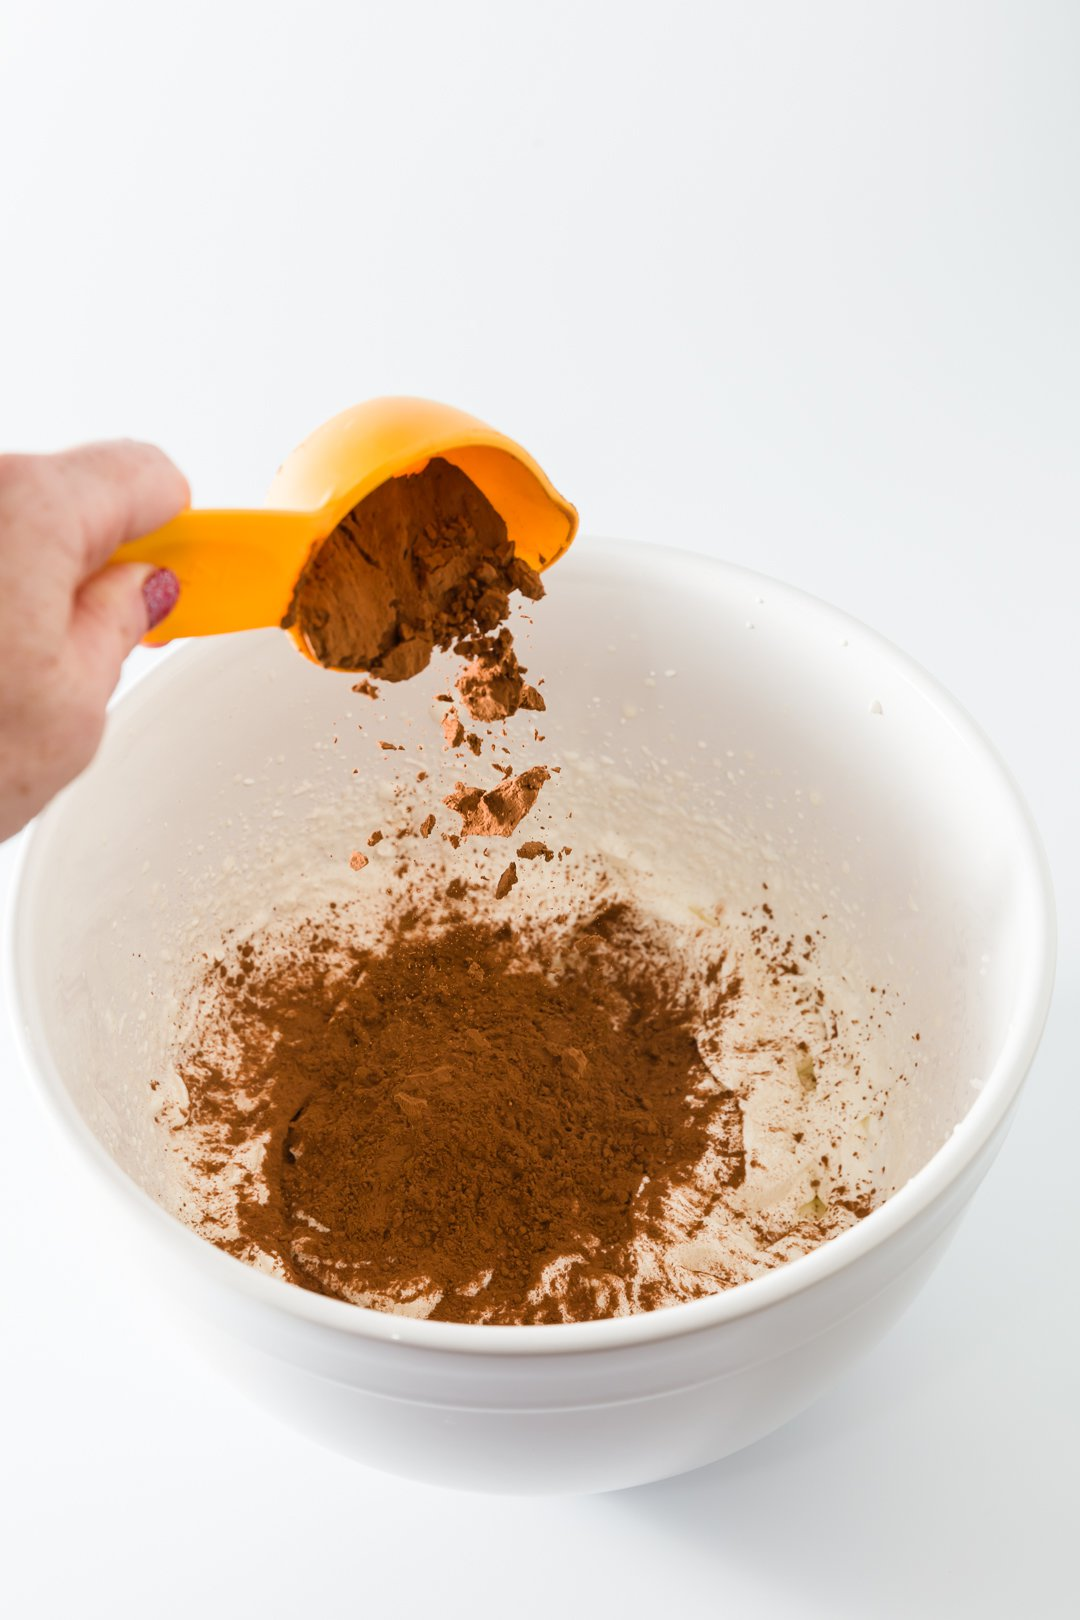 Adding cocoa powder to chocolate whipped cream